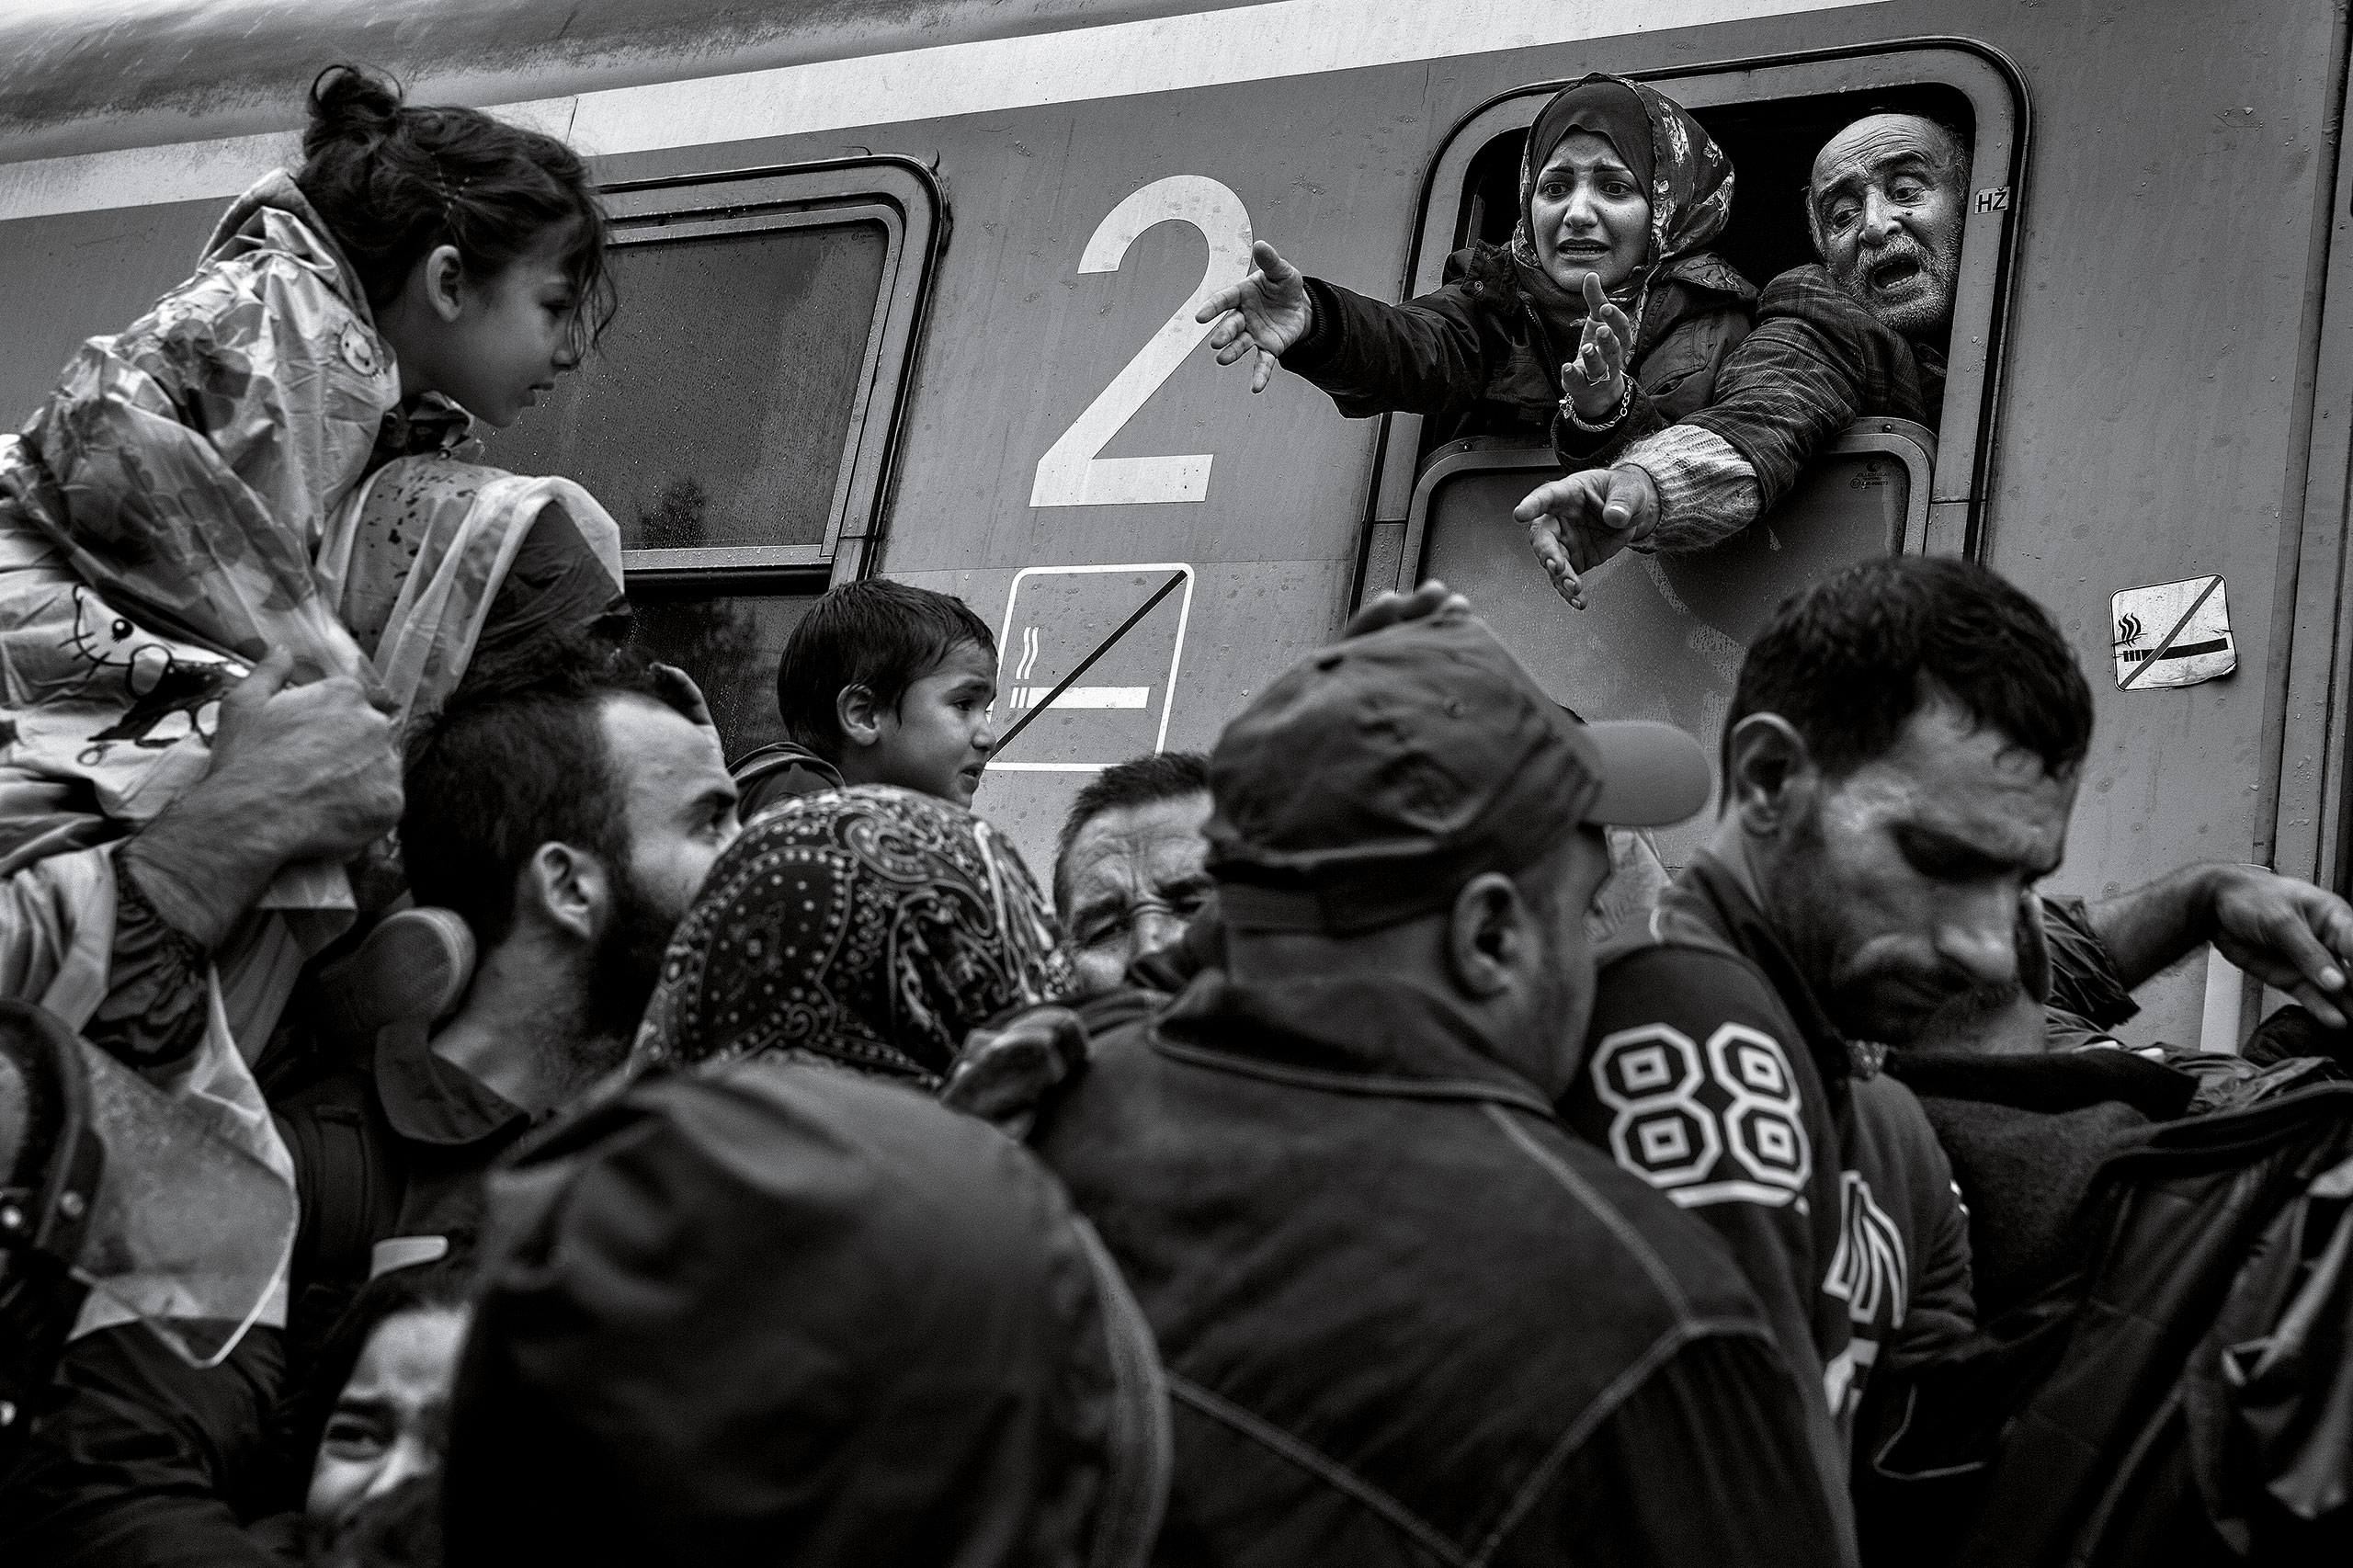 Refugees plead with police officers to let members of their families board the train in Tovarnik, Croatia, Sept. 17, 2015.From  James Nachtwey: The Journey of Hope